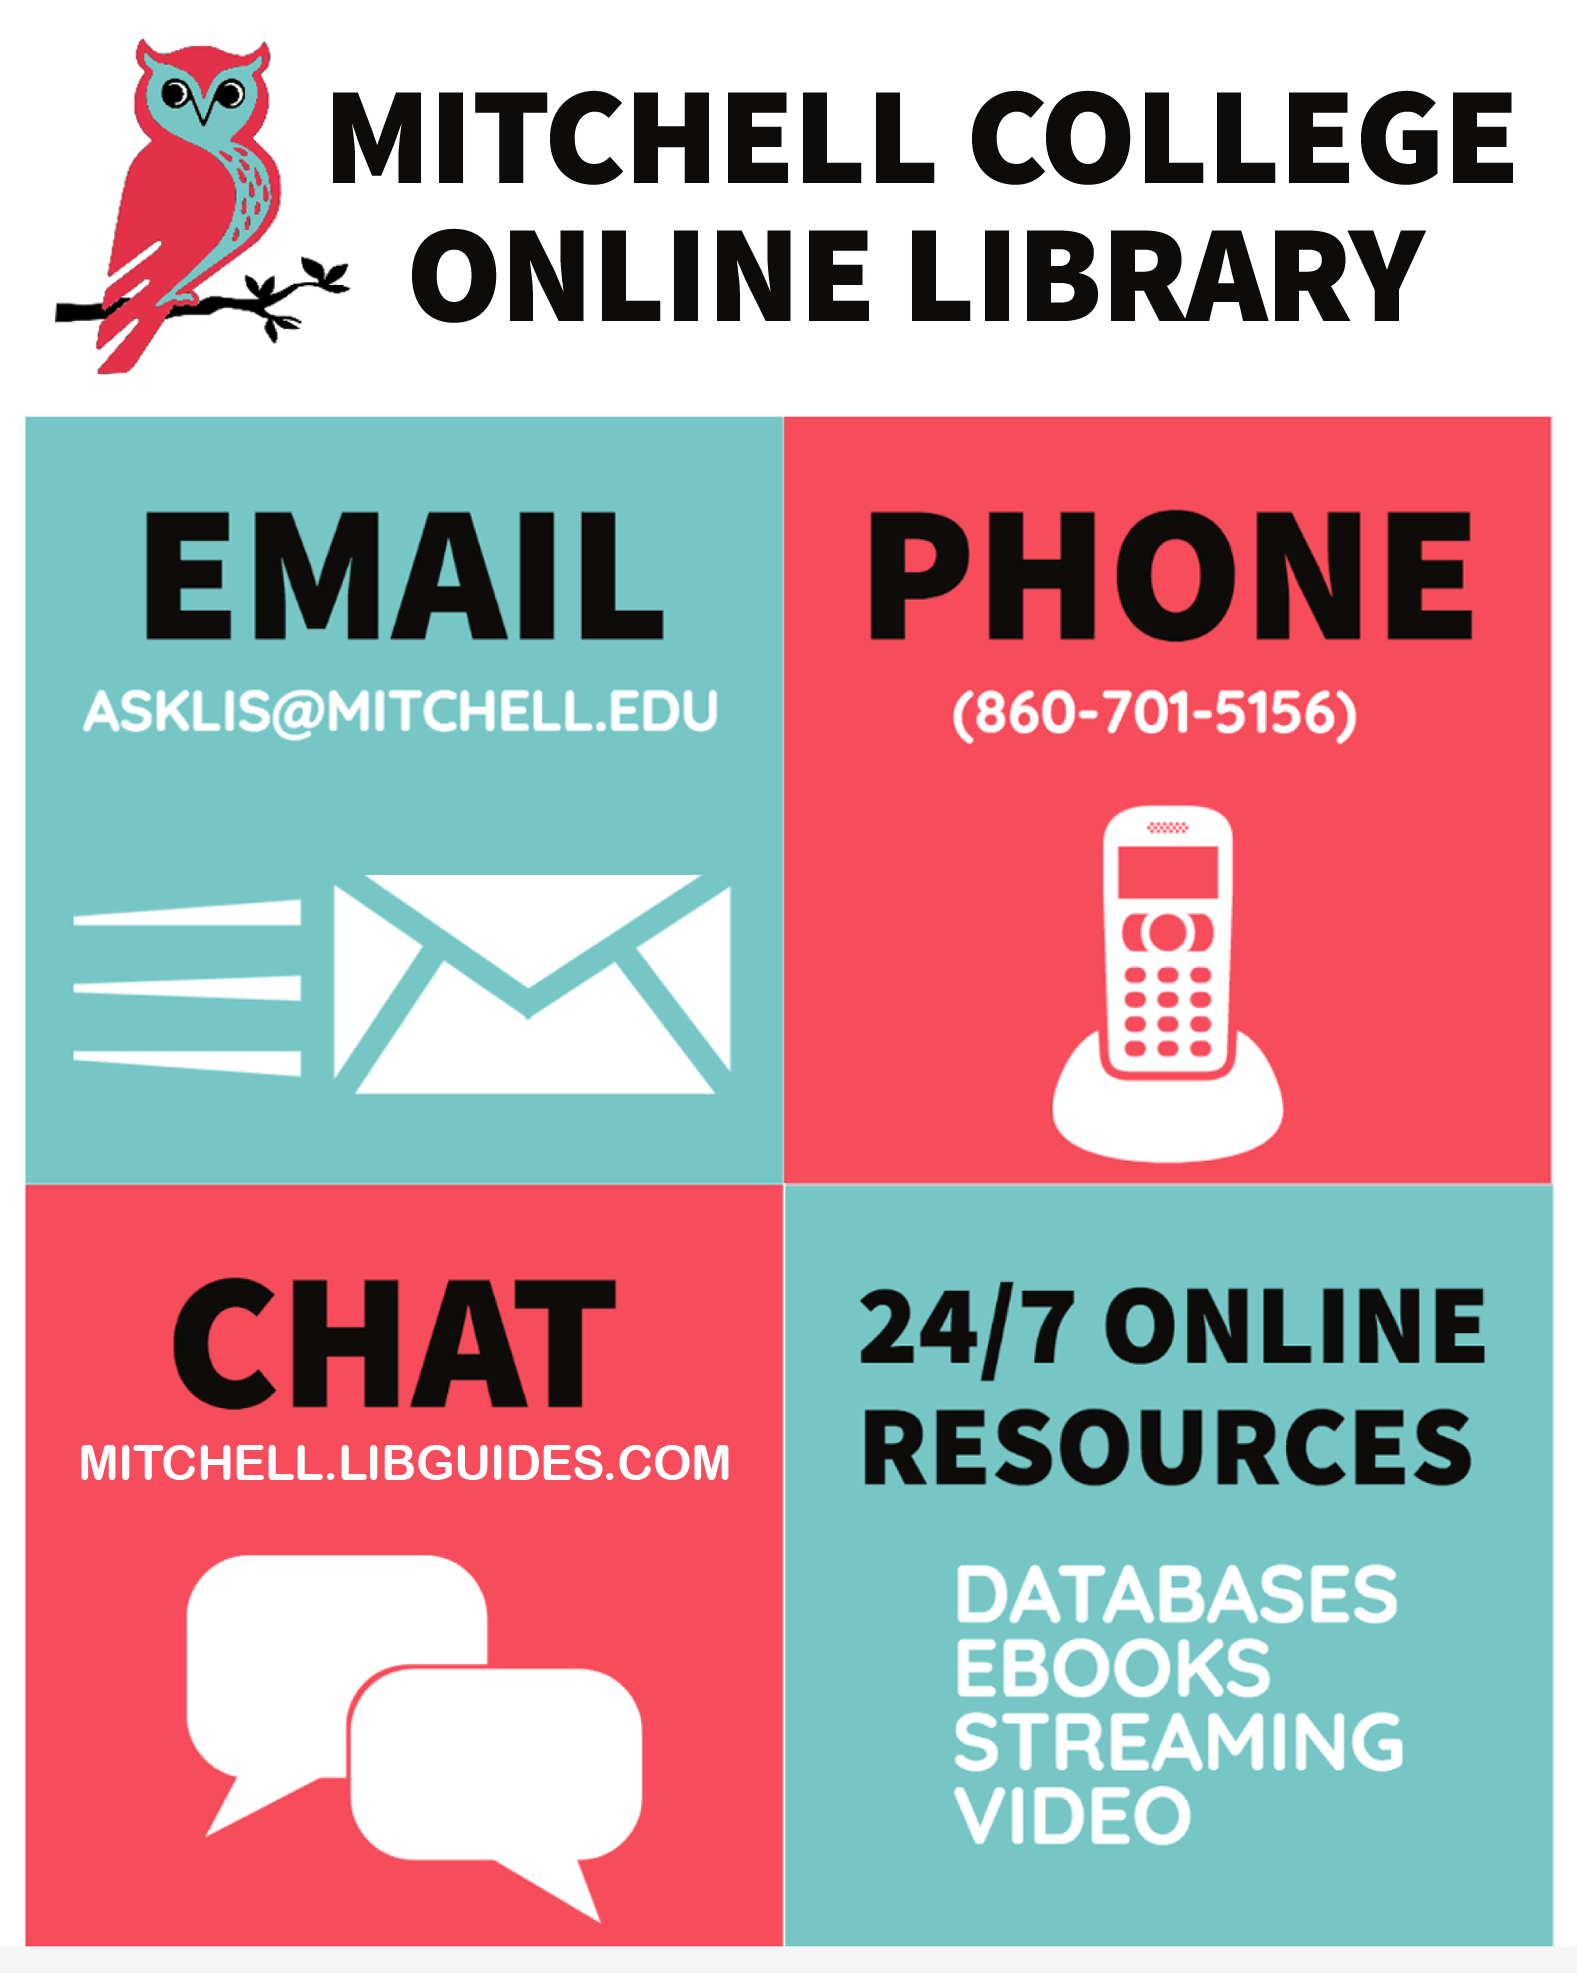 Library contacts: email us at asklis@mitchell.edu, call us at 860-701-5156, or chat with us on the library's website.  Our online resources are available 24/7 from on- or off-campus.